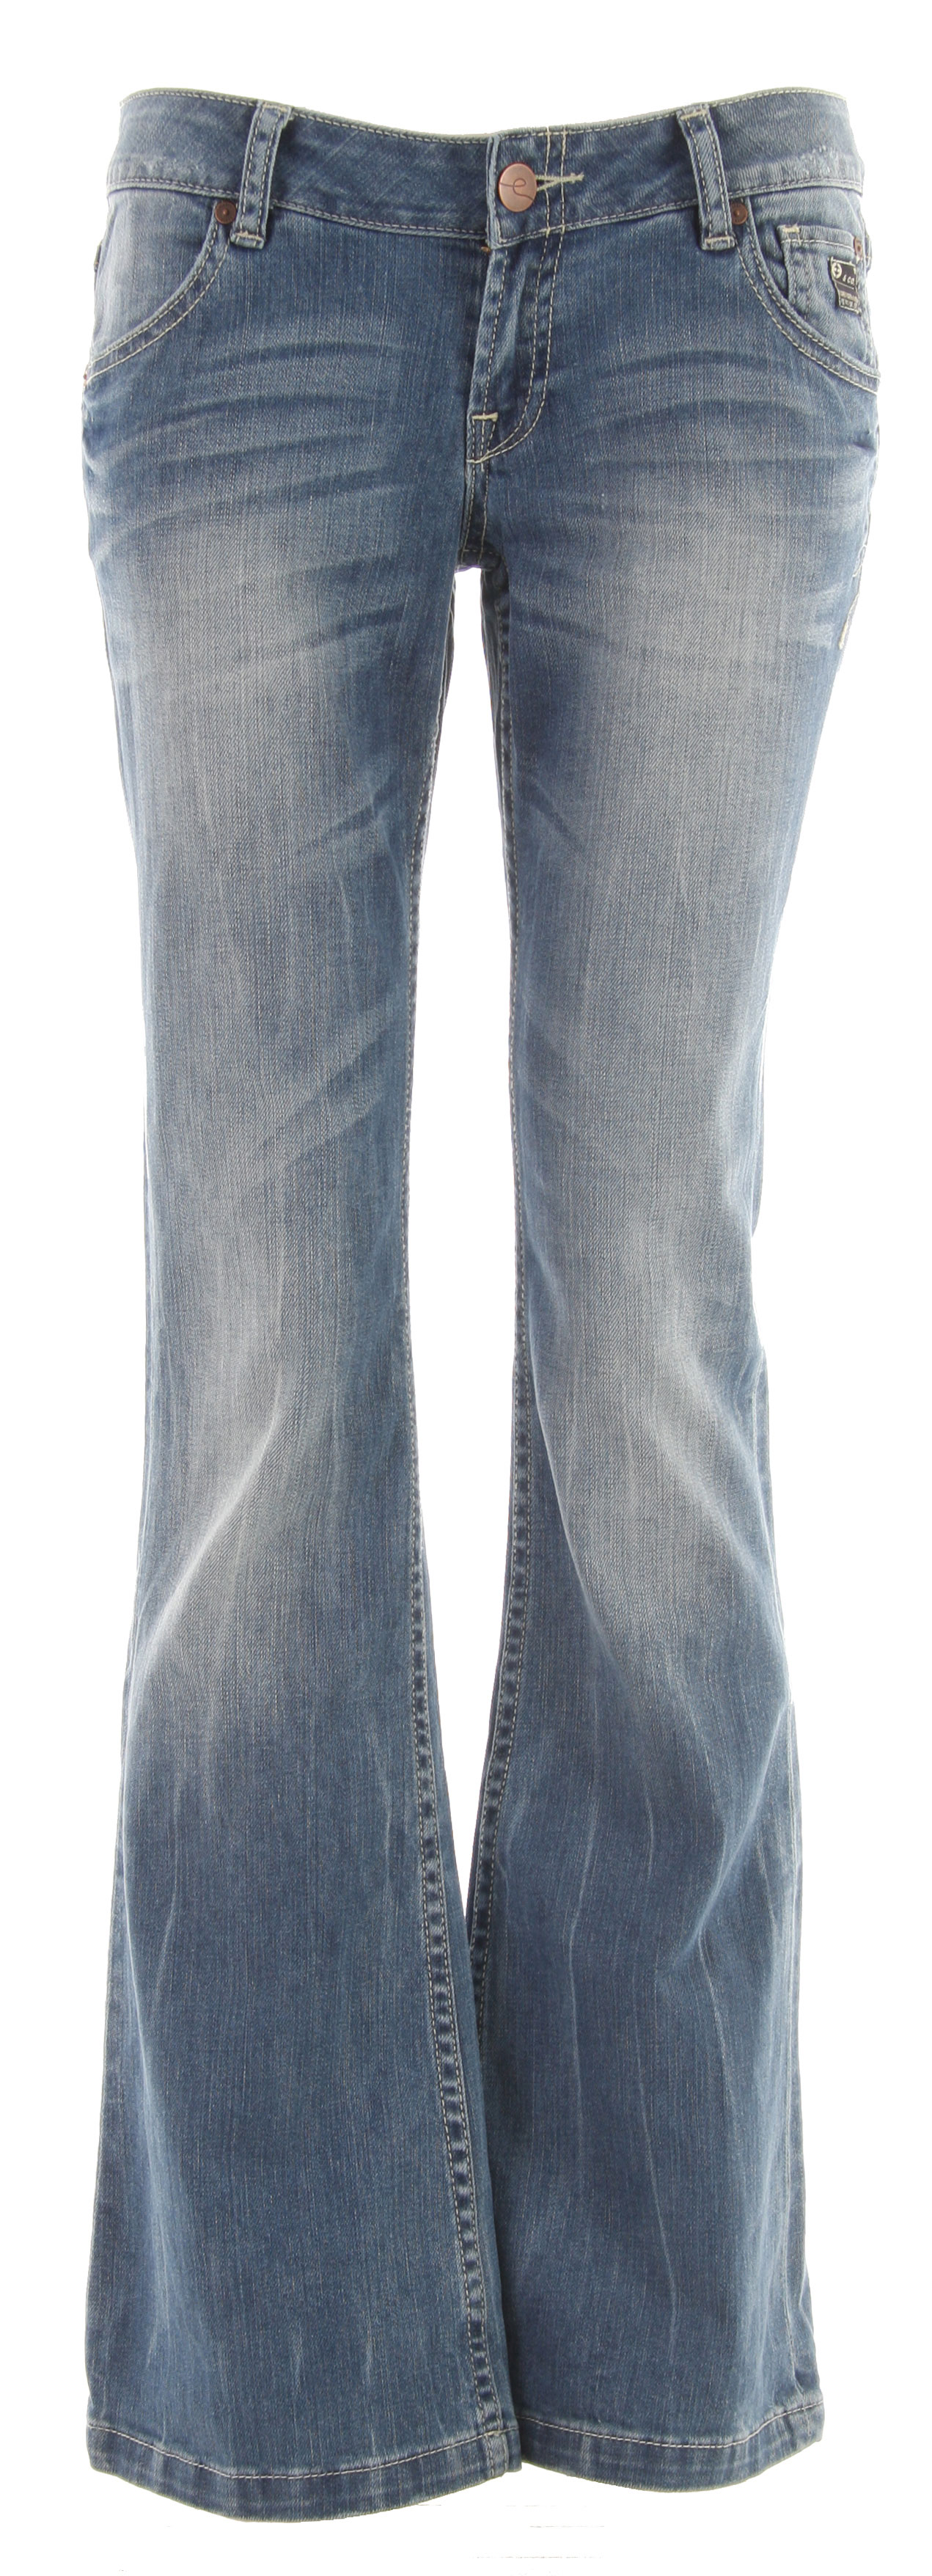 Key Features of the Planet Earth Boot Cut Stone Wash Jean: Zip Fly Button Closure 20% Organic Cotton/78% Cotton/2% Spandex - $27.96